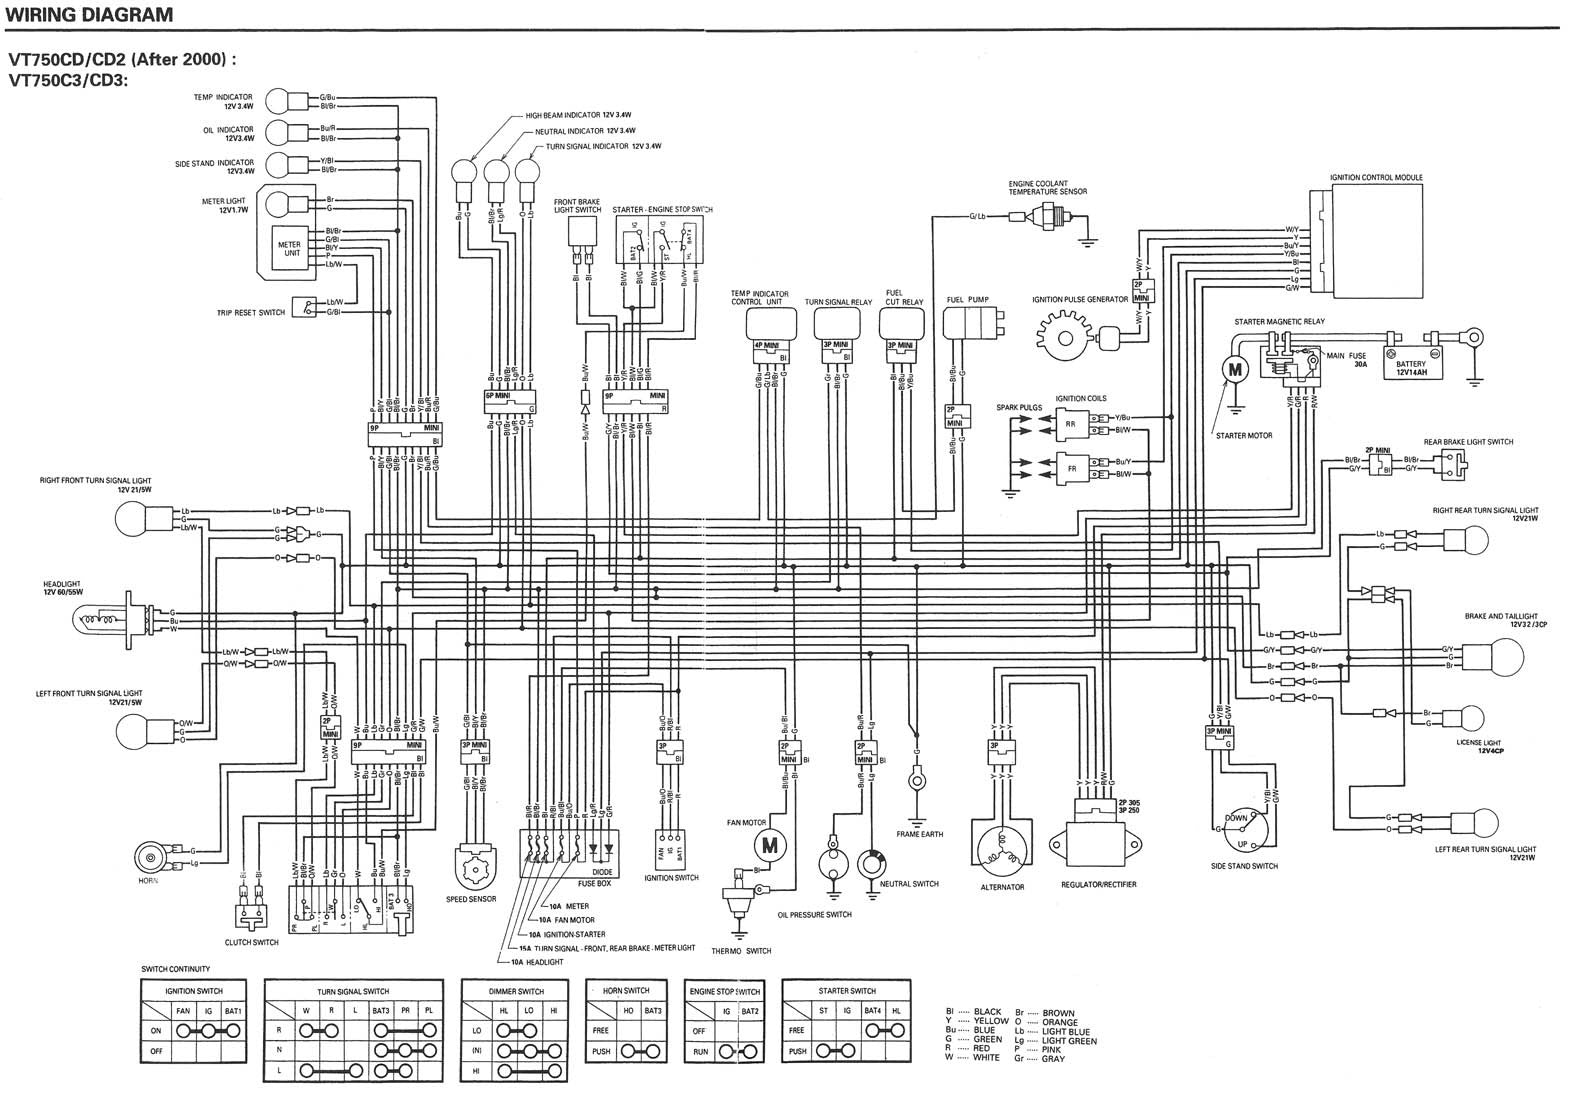 Honda Shadow Wiring Diagrams - TJ Brutal Customs Support on suzuki savage 650 wiring diagram, honda shadow engine, 2000 honda shadow wiring diagram, simple chopper wiring diagram, yamaha warrior wiring diagram, kawasaki vulcan 1500 classic wiring diagram, honda shadow vlx 600 carburetor diagram, honda cb750 wiring-diagram, coil wiring diagram, suzuki intruder 1400 wiring diagram, honda shadow parts diagram, honda shadow aftermarket parts, suzuki gsx-r 600 wiring diagram, horn wiring diagram, honda shadow 600 wiring diagram, honda shadow vt700, turn signal relay wiring diagram, 1984 honda vt700c shadow diagram, 1985 honda shadow wiring diagram, honda shadow 1100 wiring diagram,